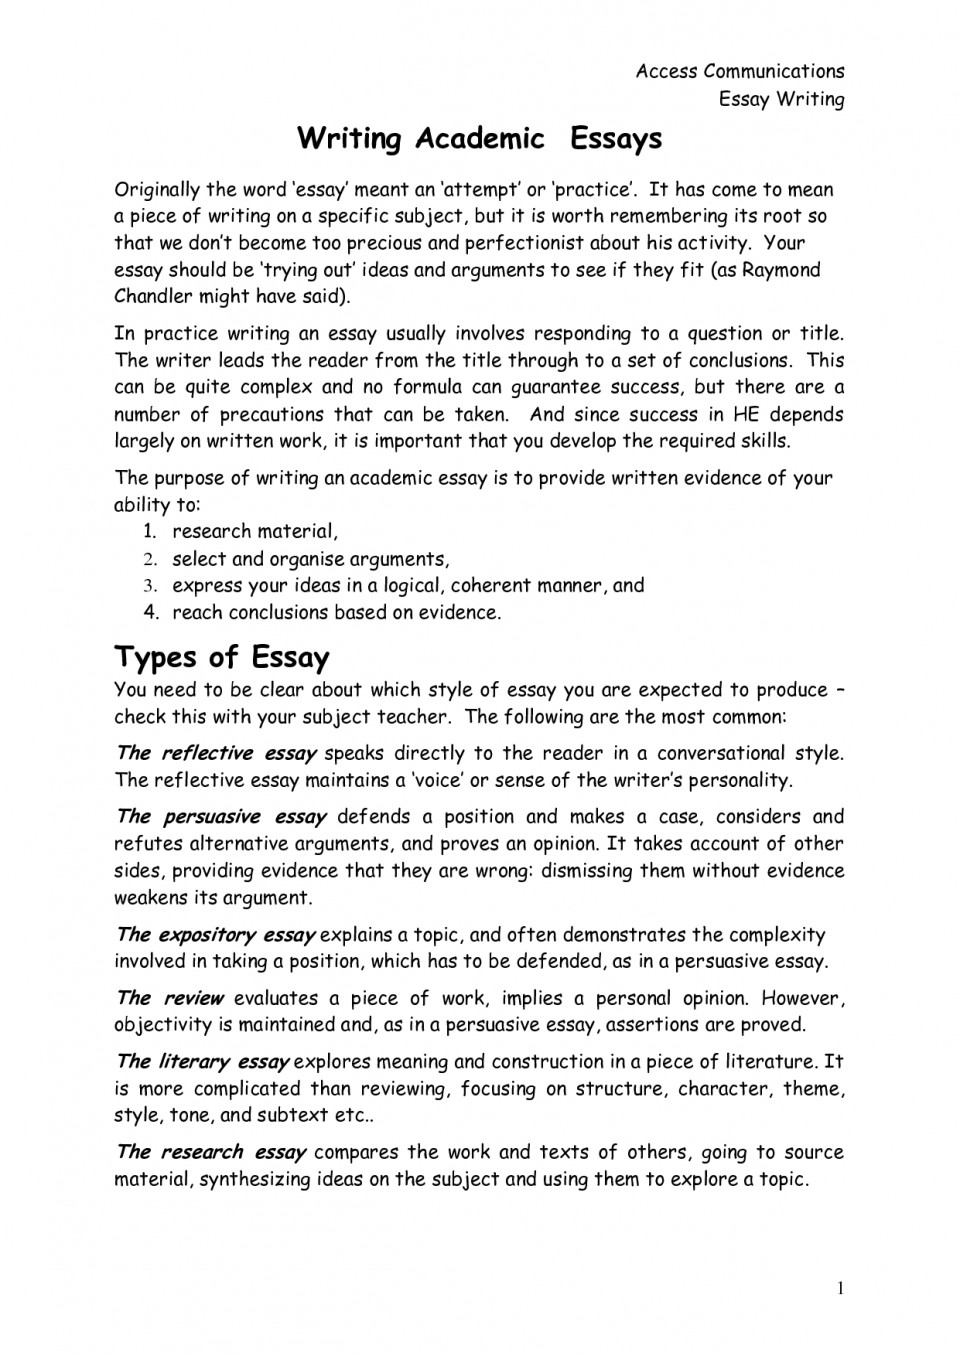 021 Essay Example Write An For Me Surprising Meaning In Gujarati Free My Online 960